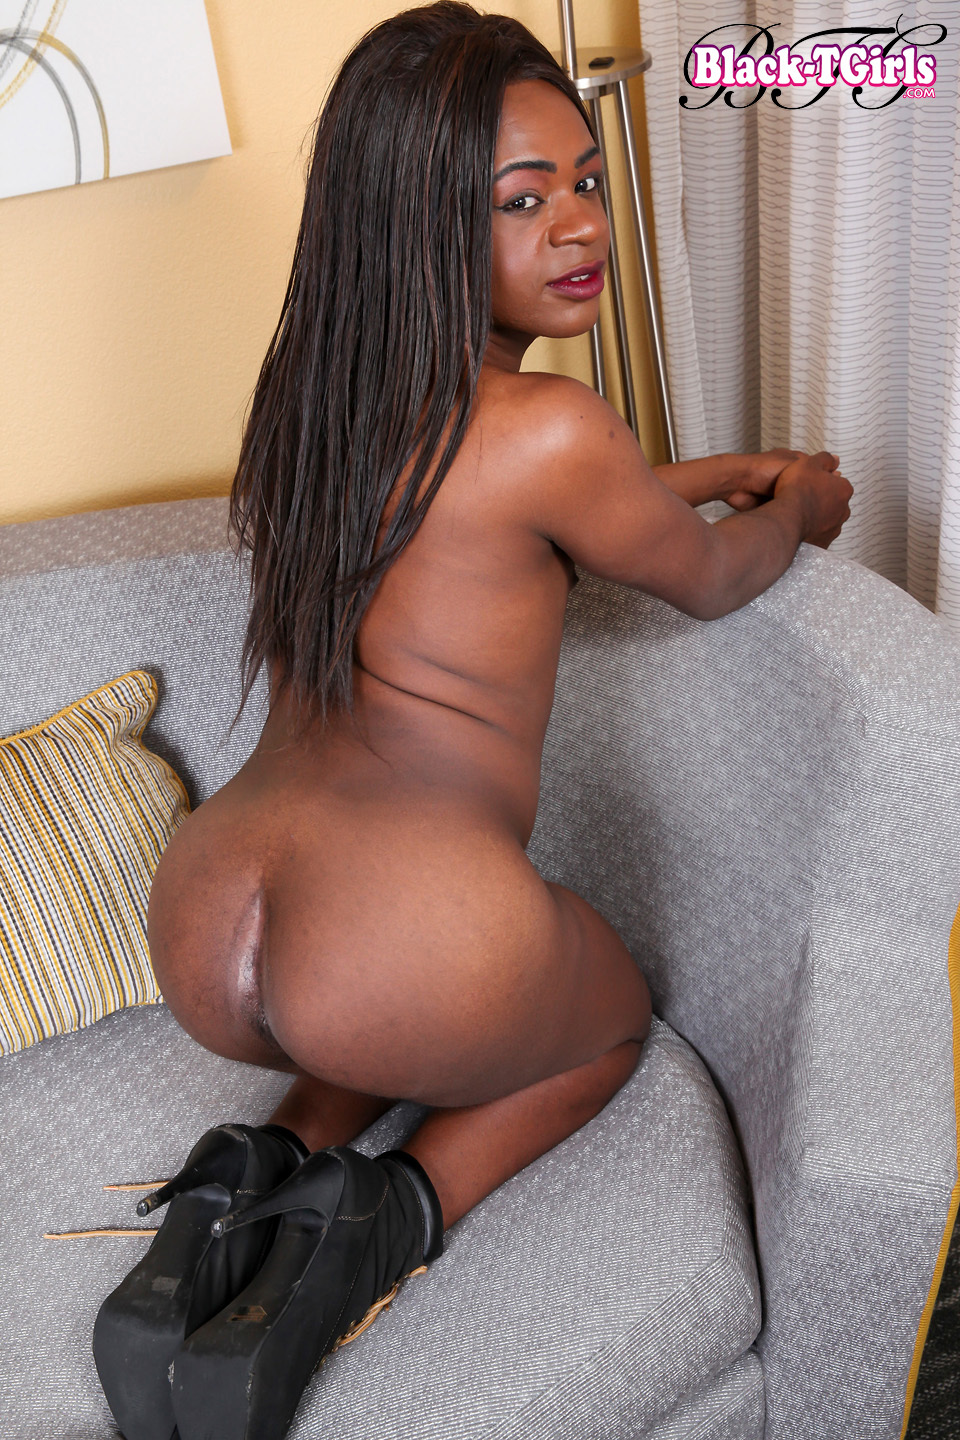 Suggestive Diamond Jai Is A Inviting Ts With A Steamy Body, Great Ass-Hole